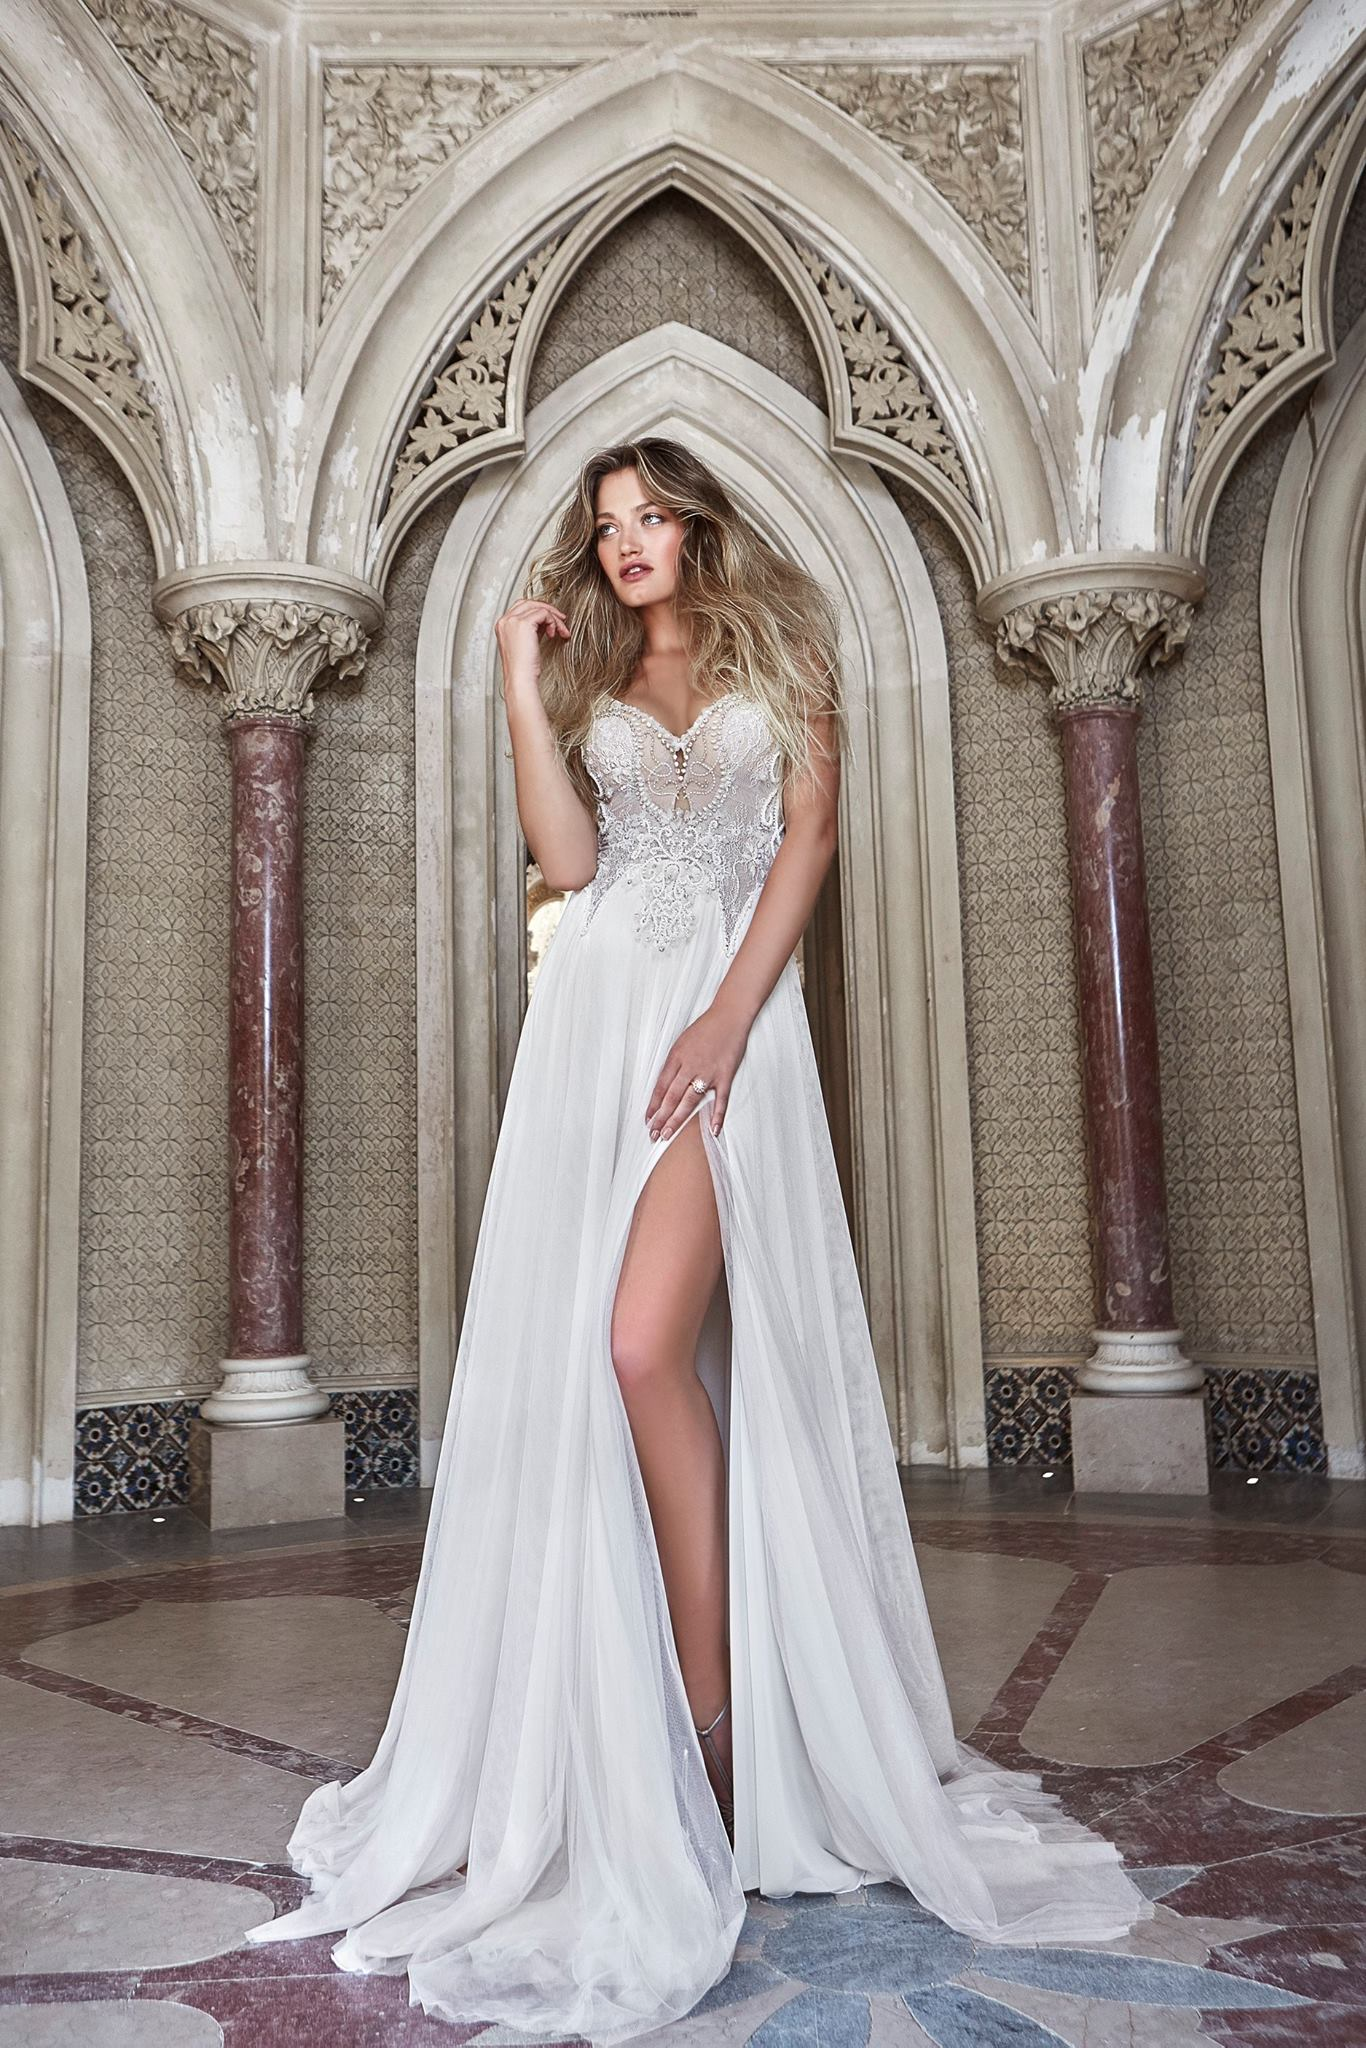 Krystal Nicole Bridal Couture - Houston Wedding Gown Salons